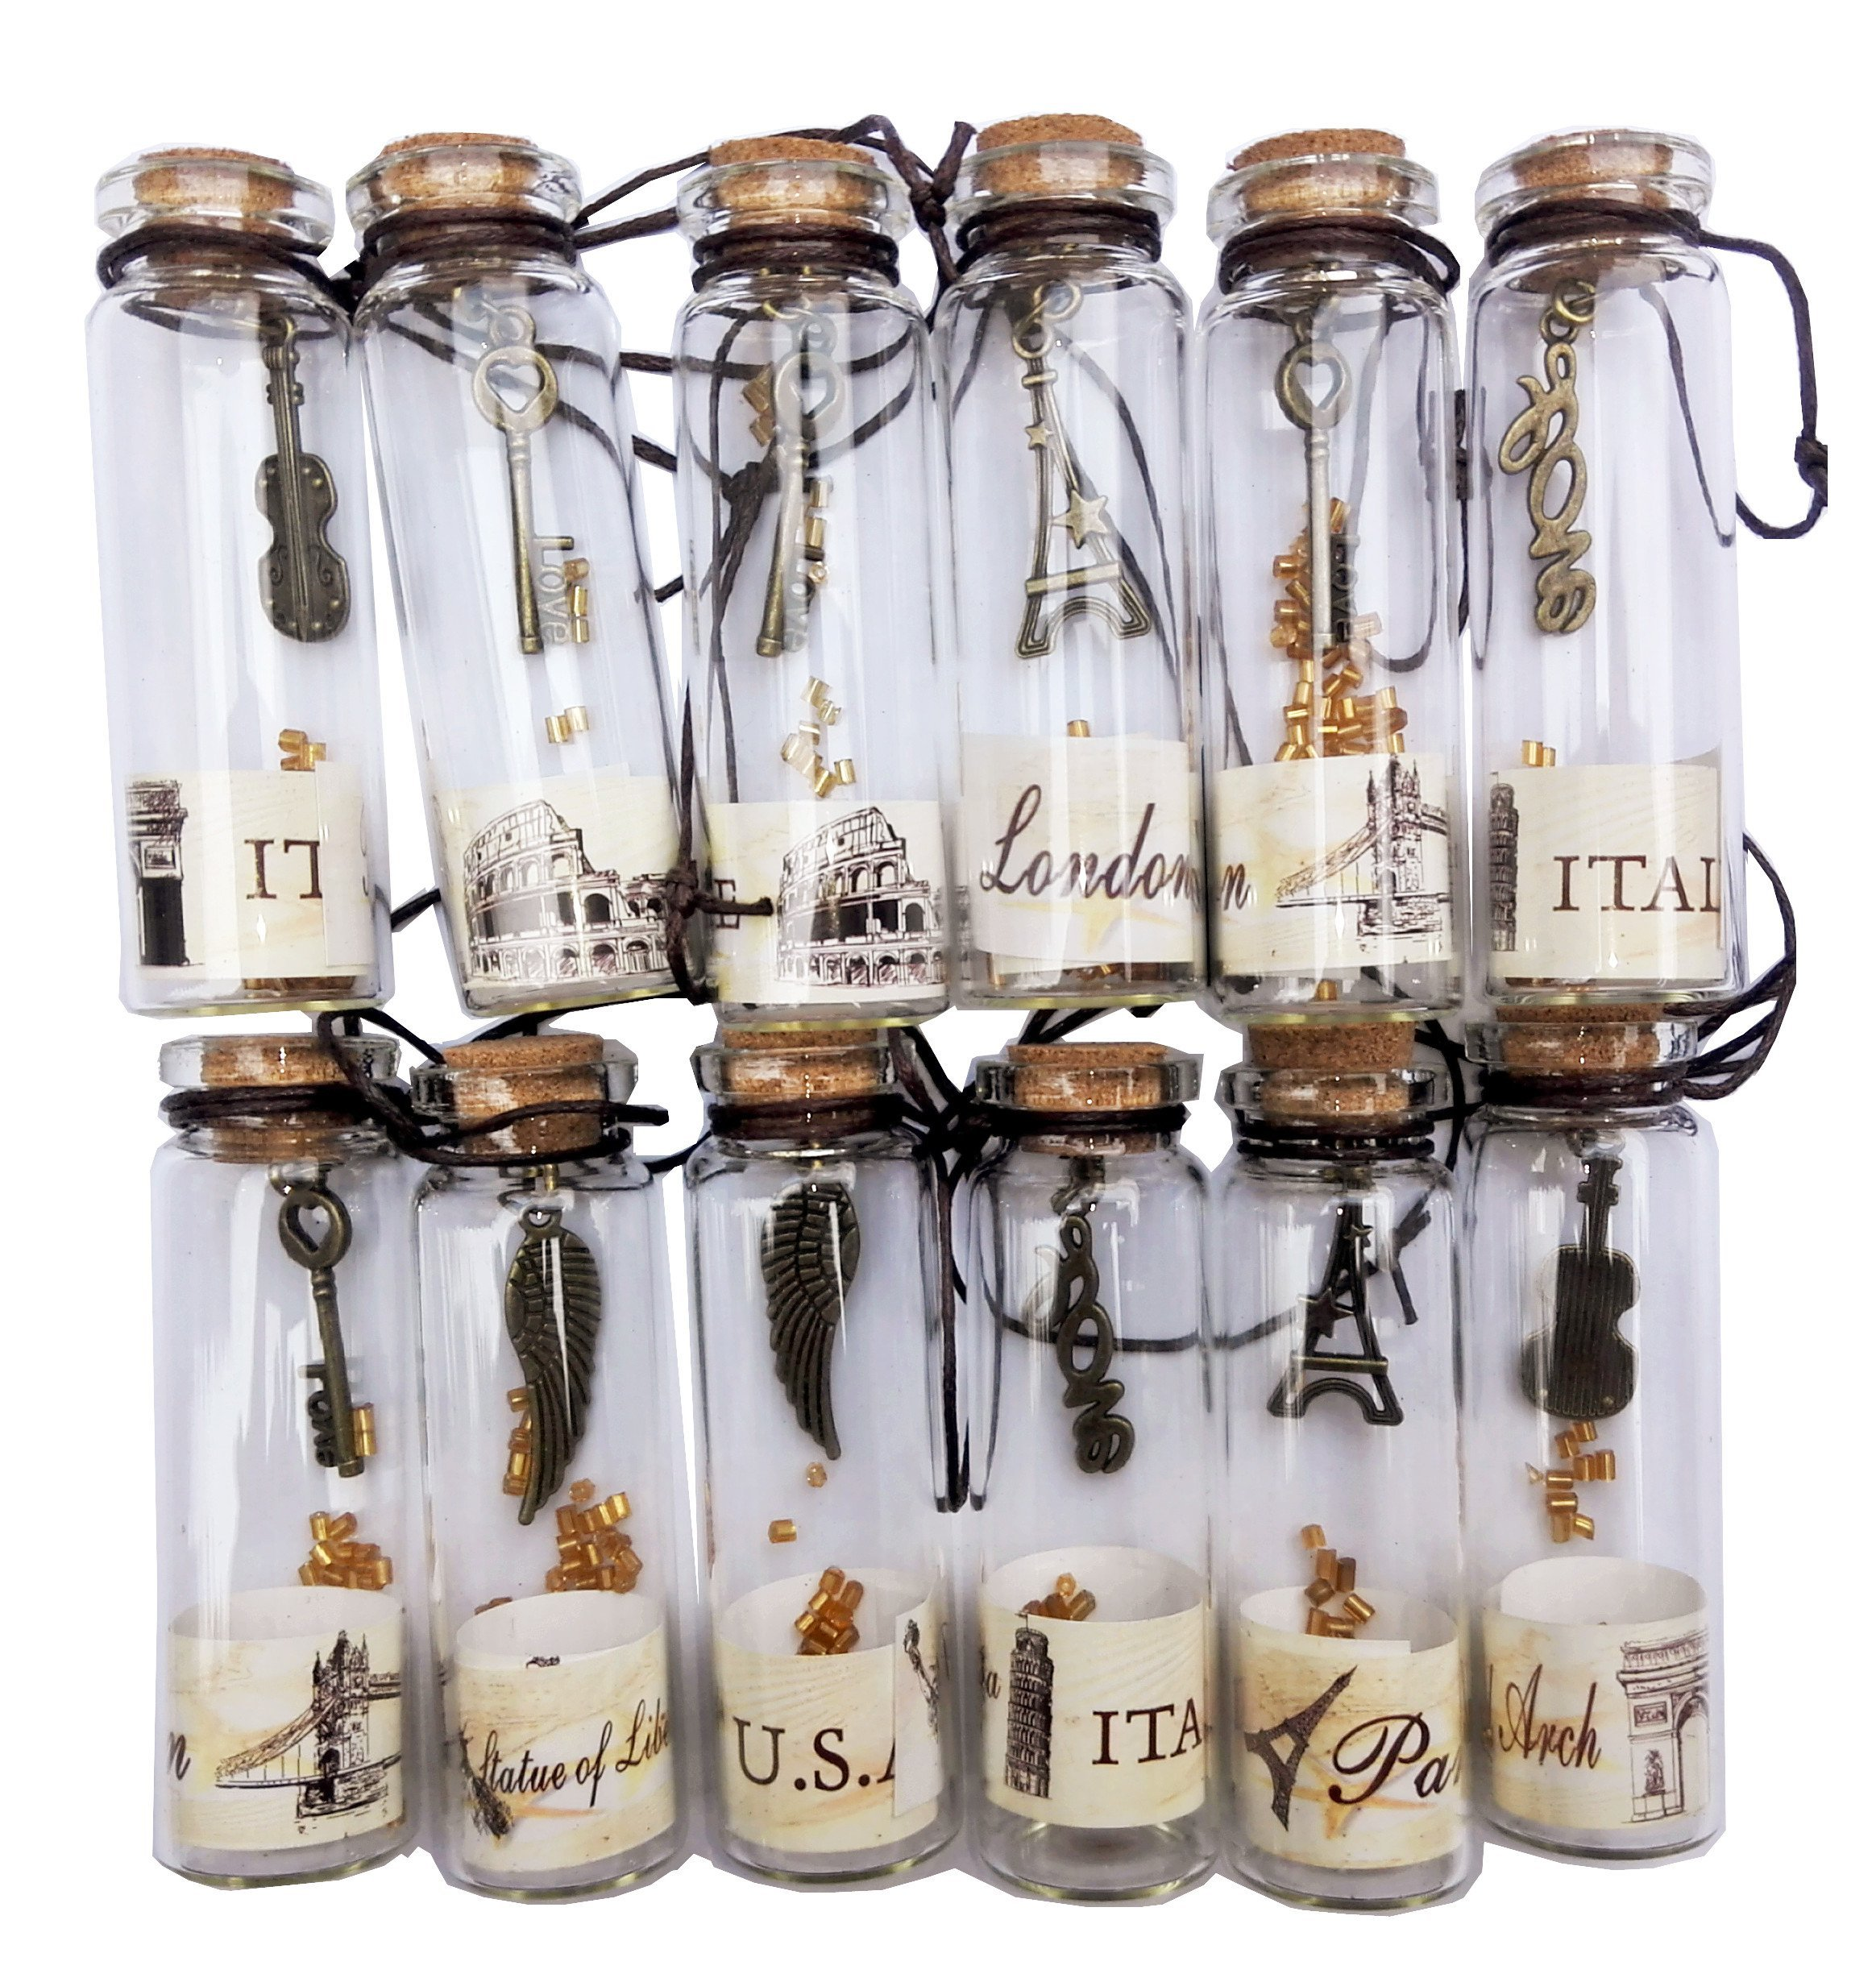 Nesting Nomad Small Transparent Mini Glass Jars with Cork Stopper and with Inside Steam Punk Pendants 3